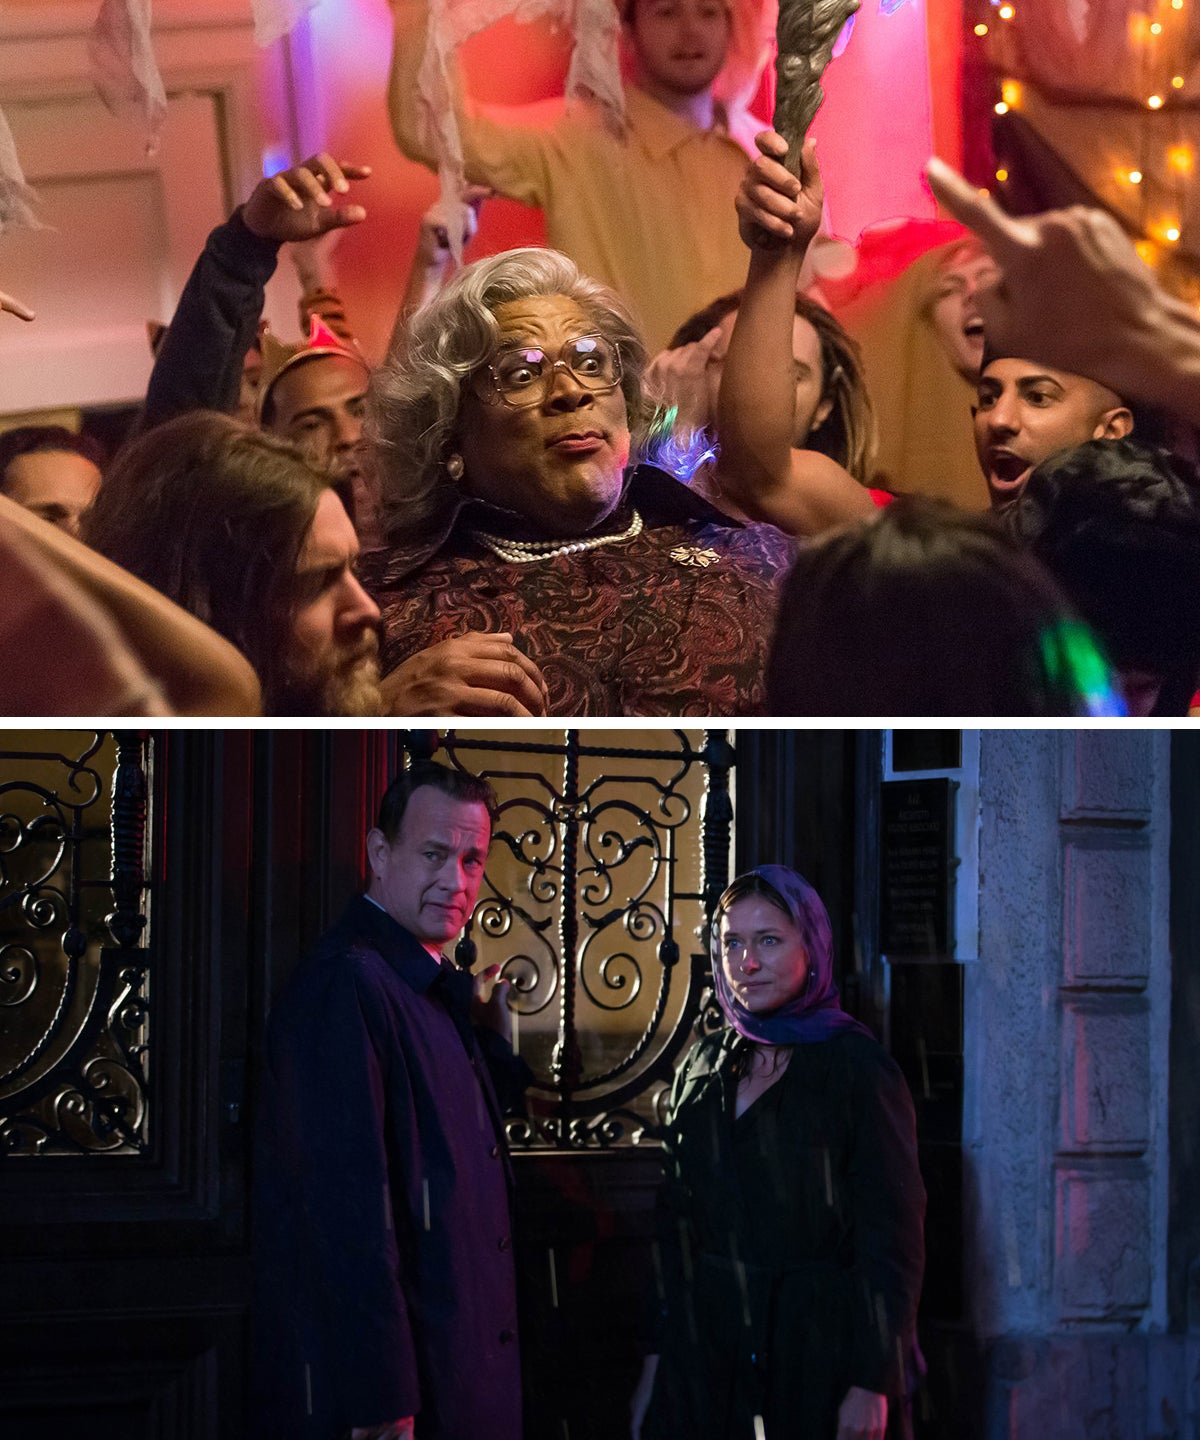 Scenes from Boo! A Madea Halloween and Inferno